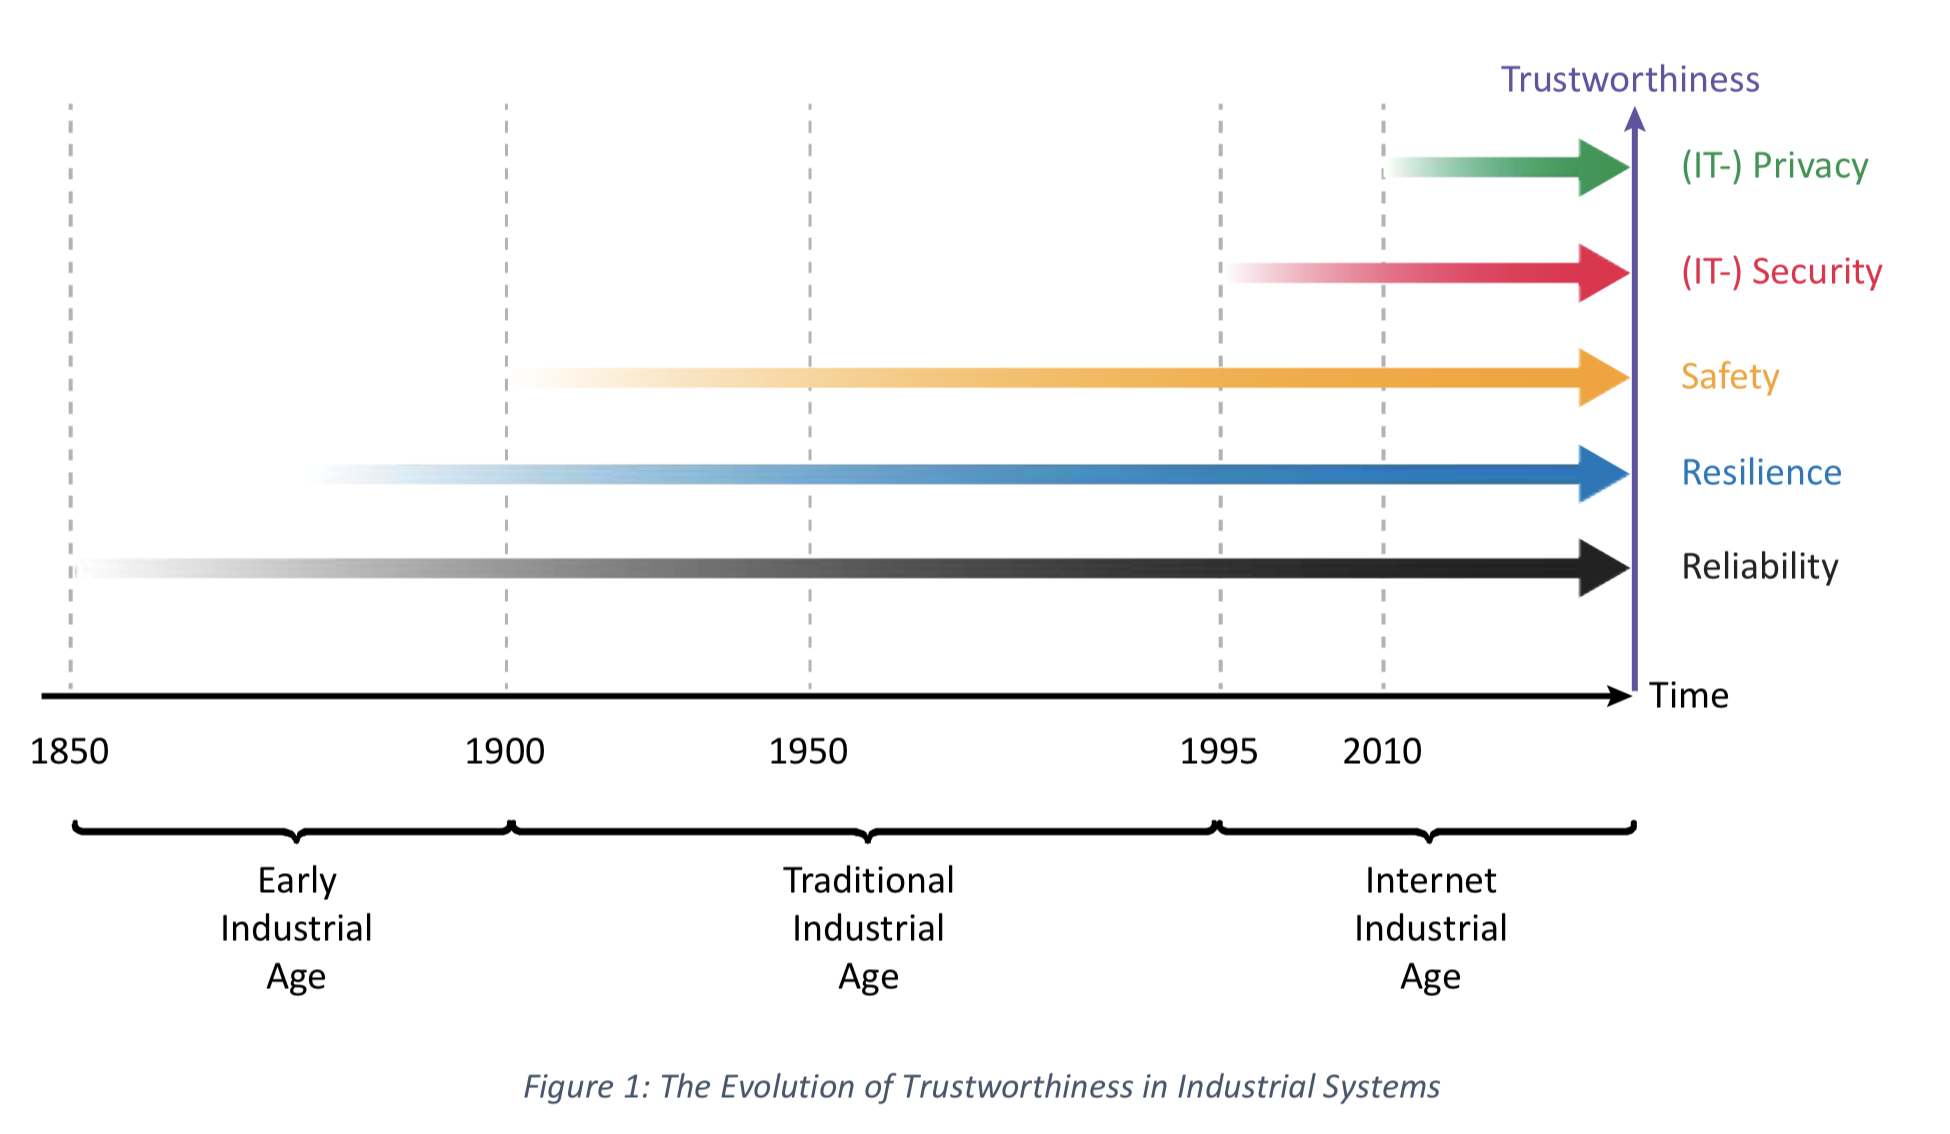 The evolution of Trustworthiness in Industrial Systems